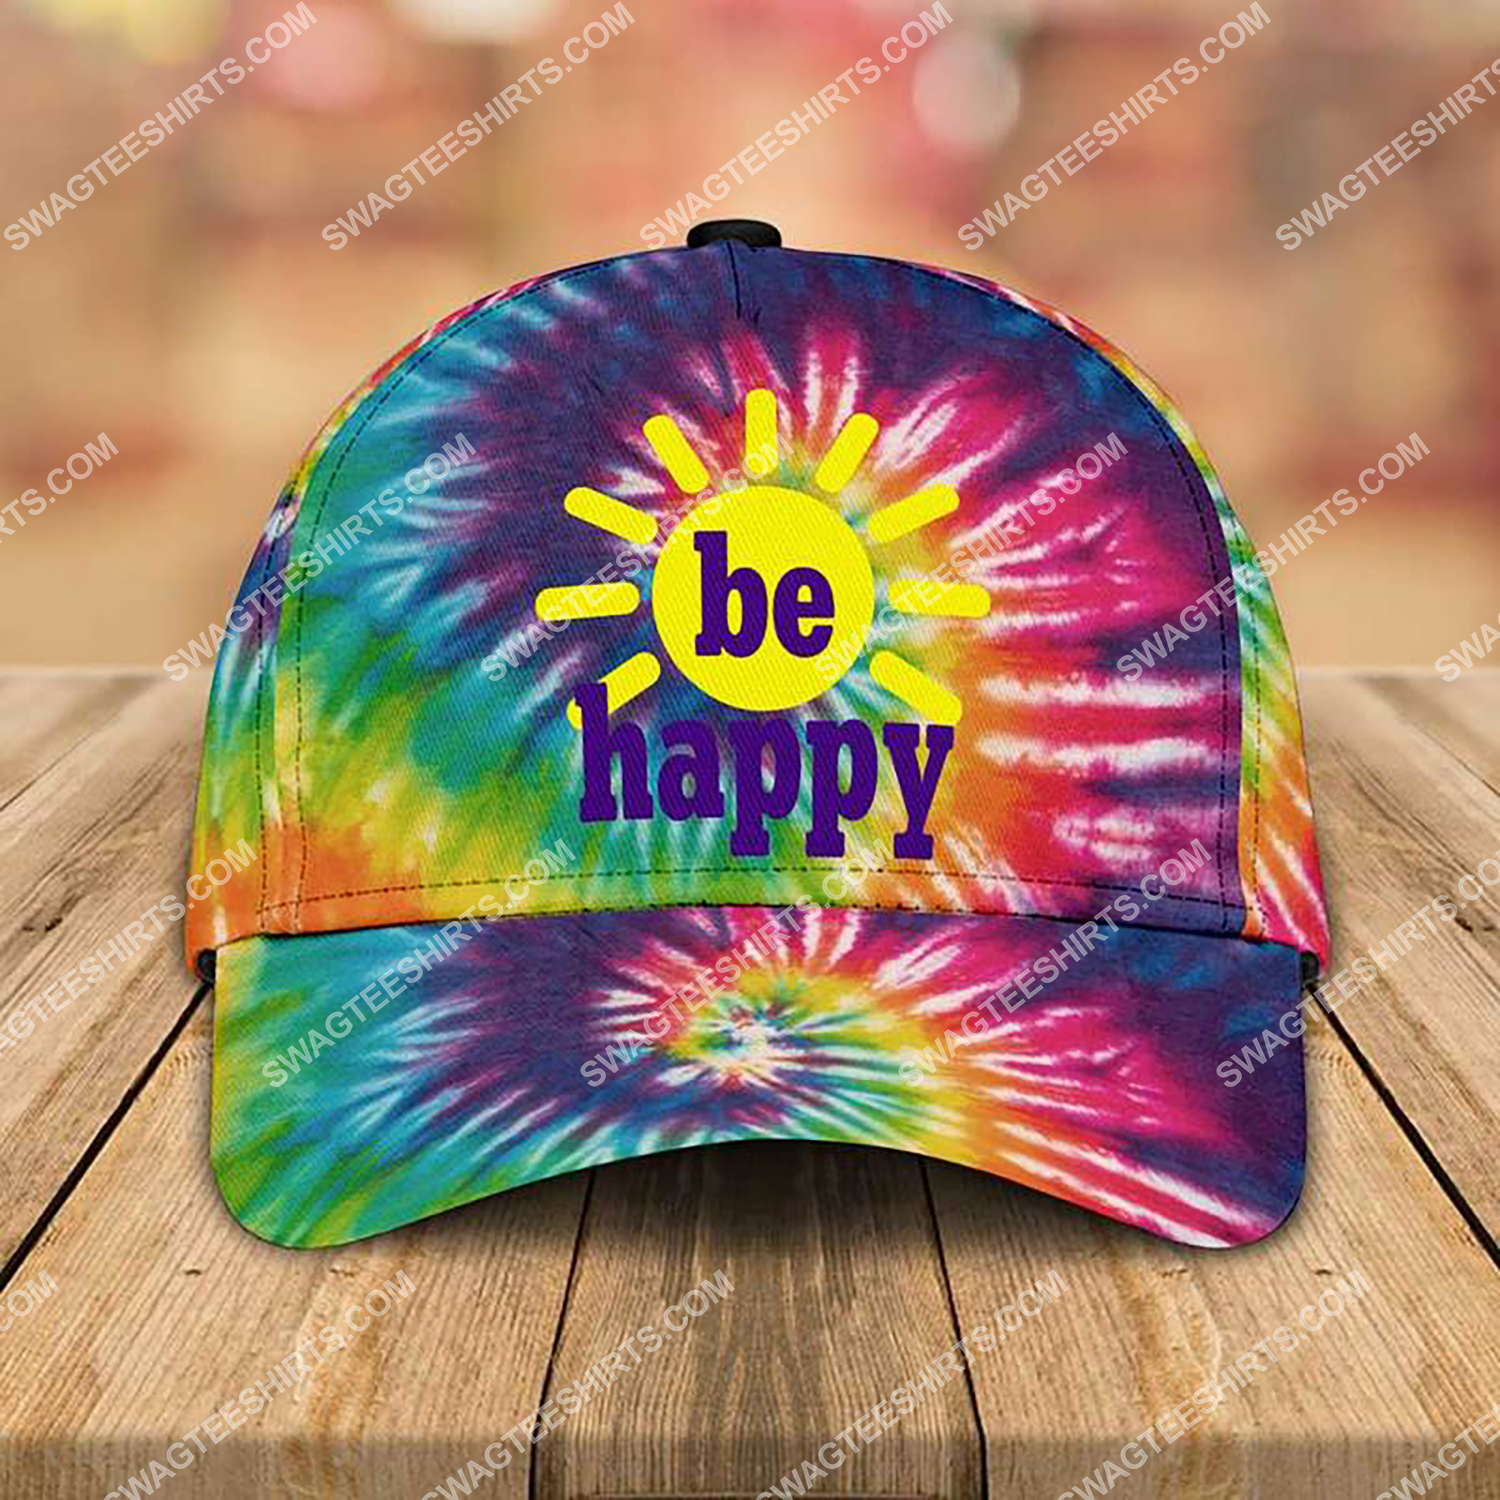 be happy tie-dye colorful all over printed classic cap 3 - Copy (2)